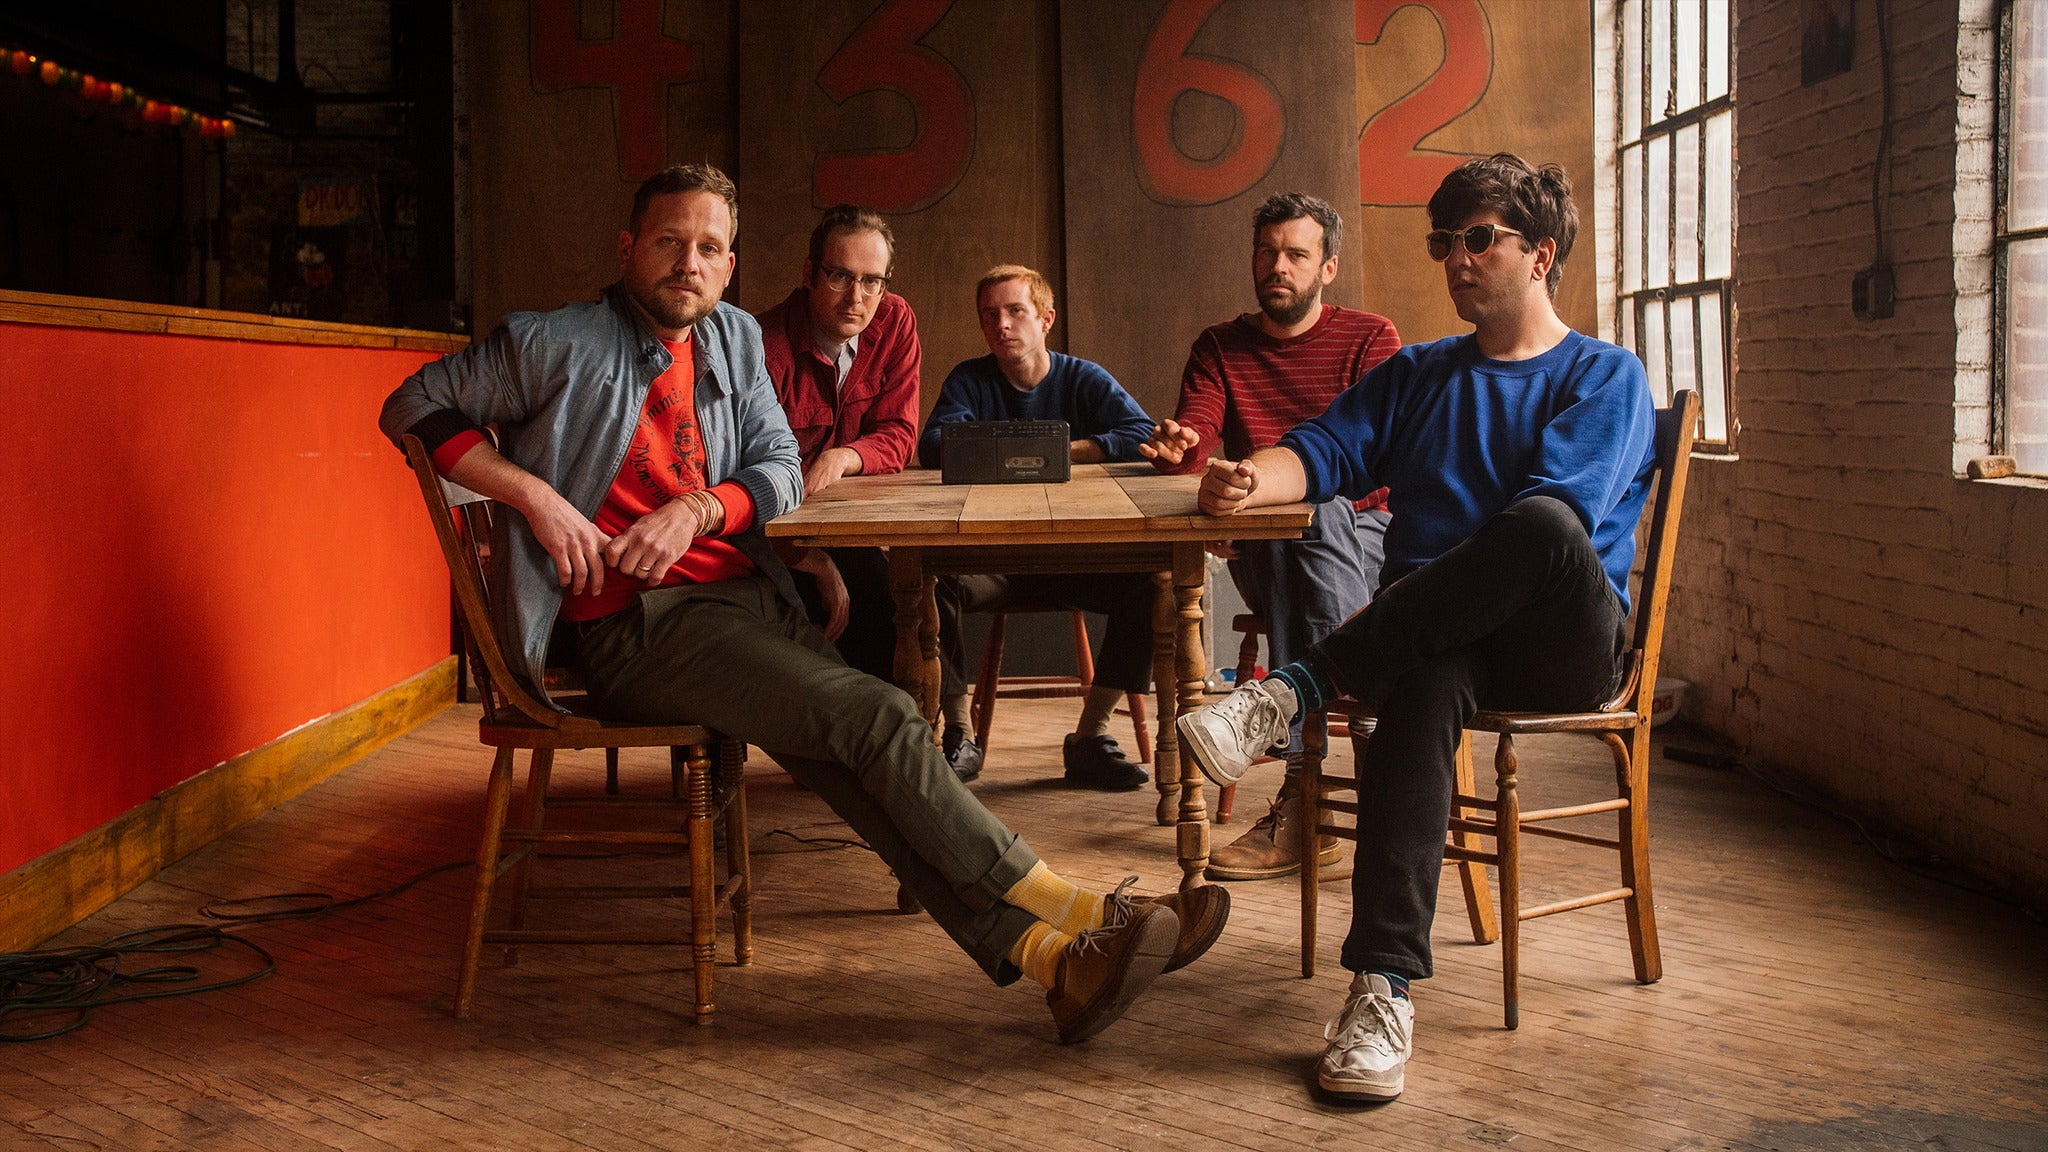 presale password for Dr. Dog tickets in New York - NY (The Rooftop at Pier 17)